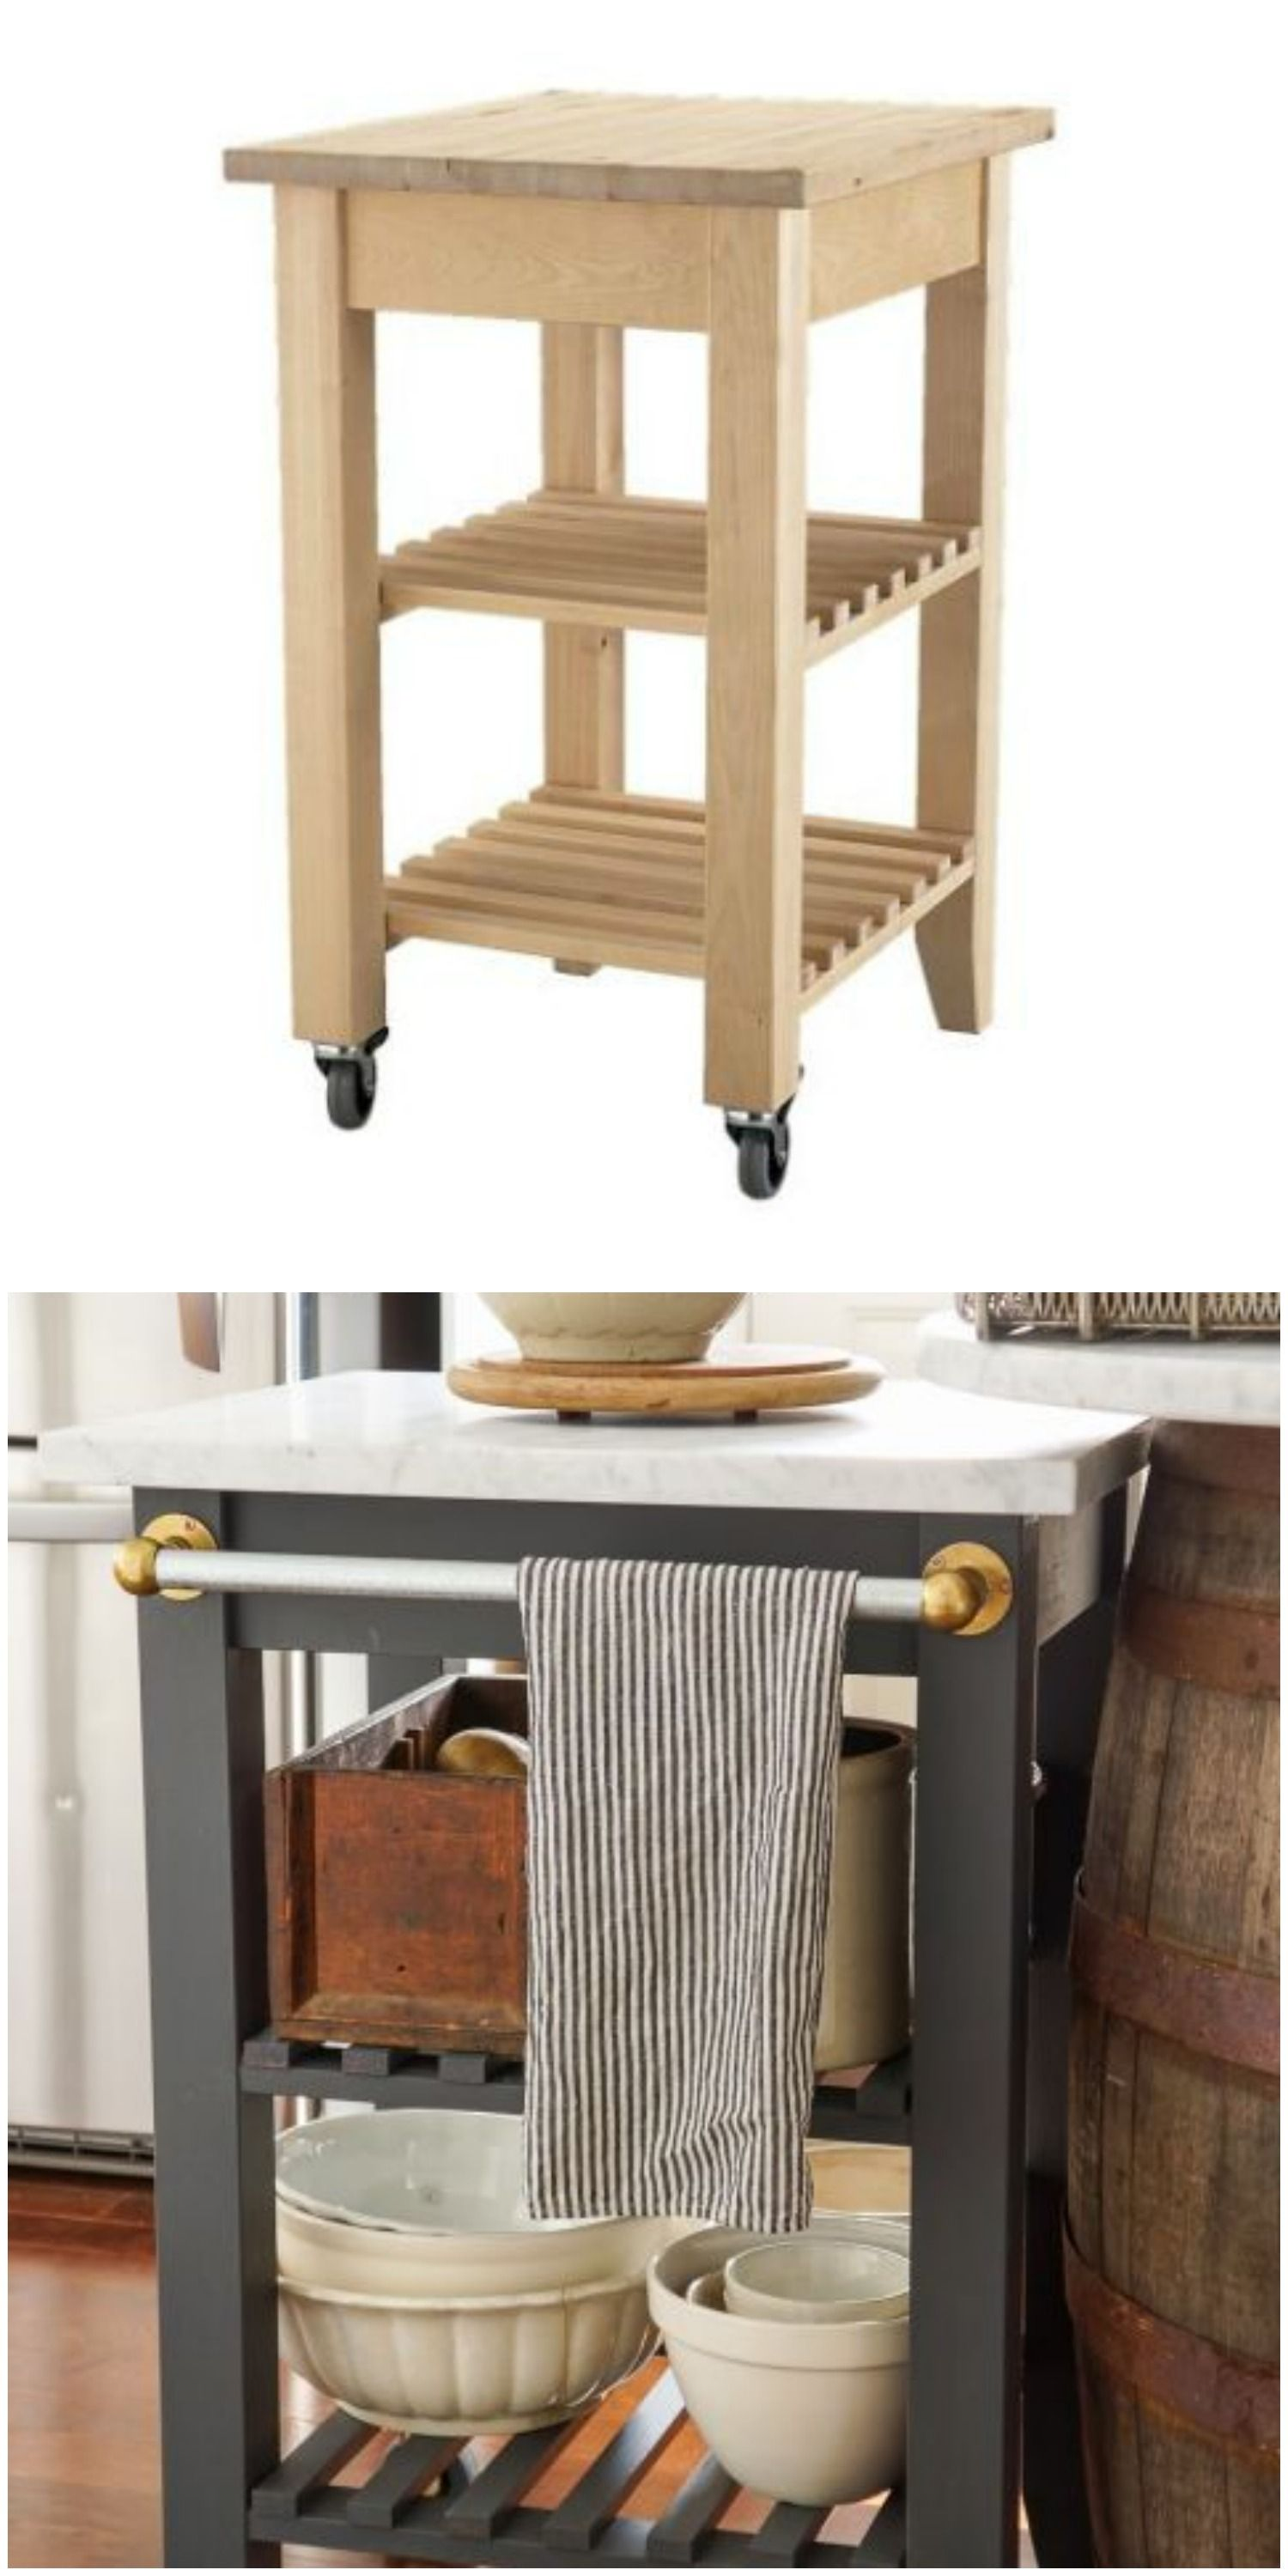 The Bekvam kitchen cart dazzles as a portable kitchen island in this IKEA hack